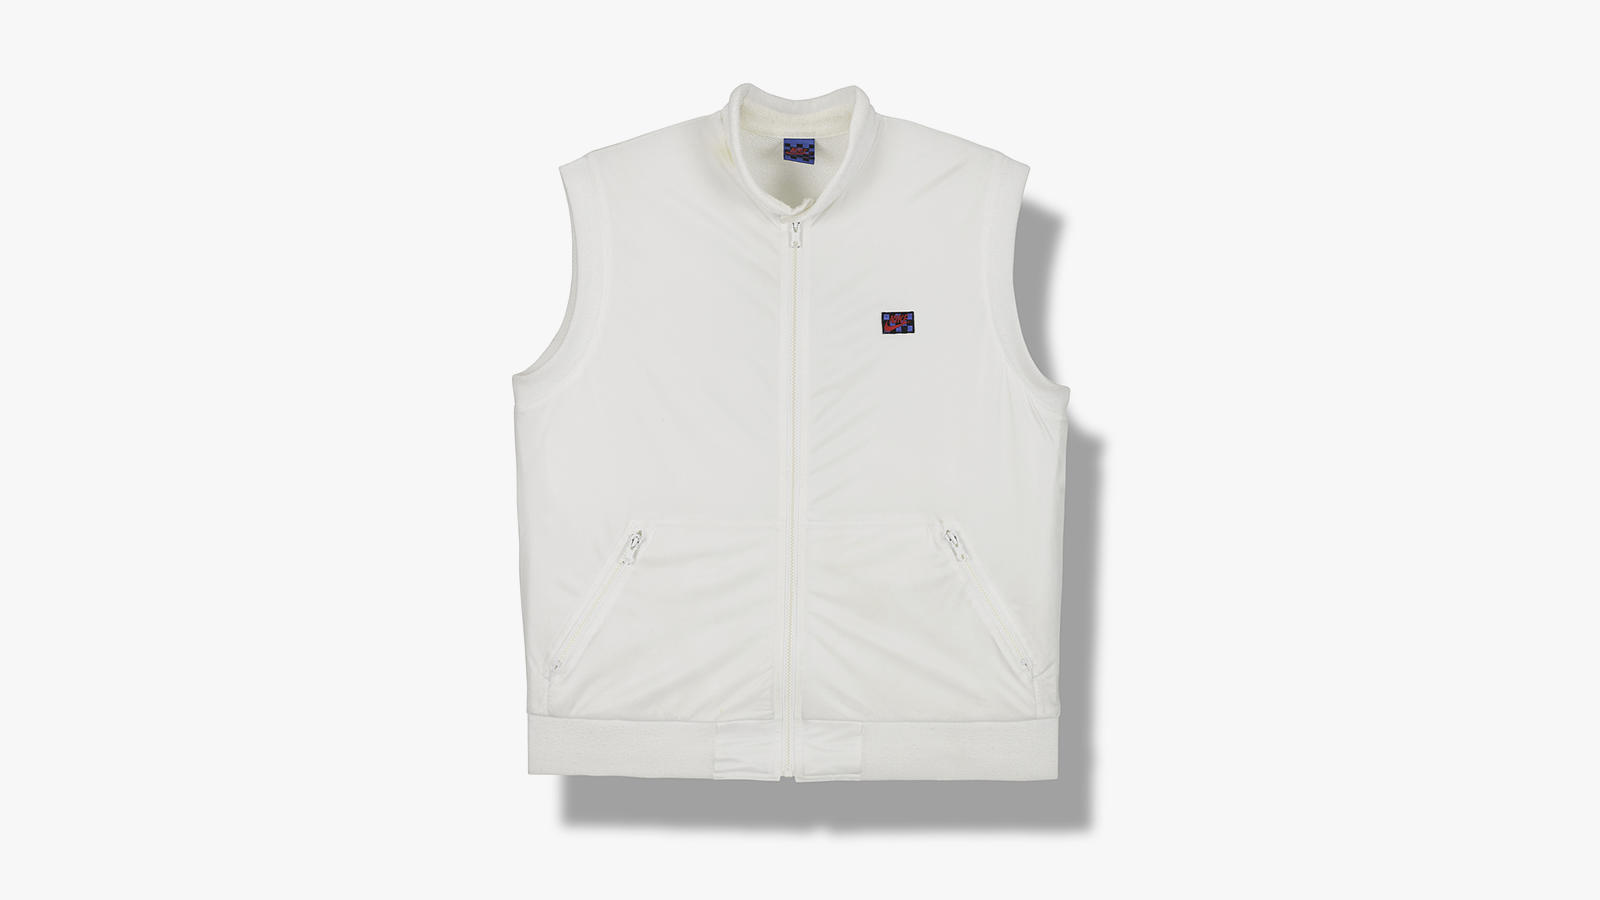 1985-Nike-52nd-Street-Fleece-Vest-from-the-McEnroe-Line